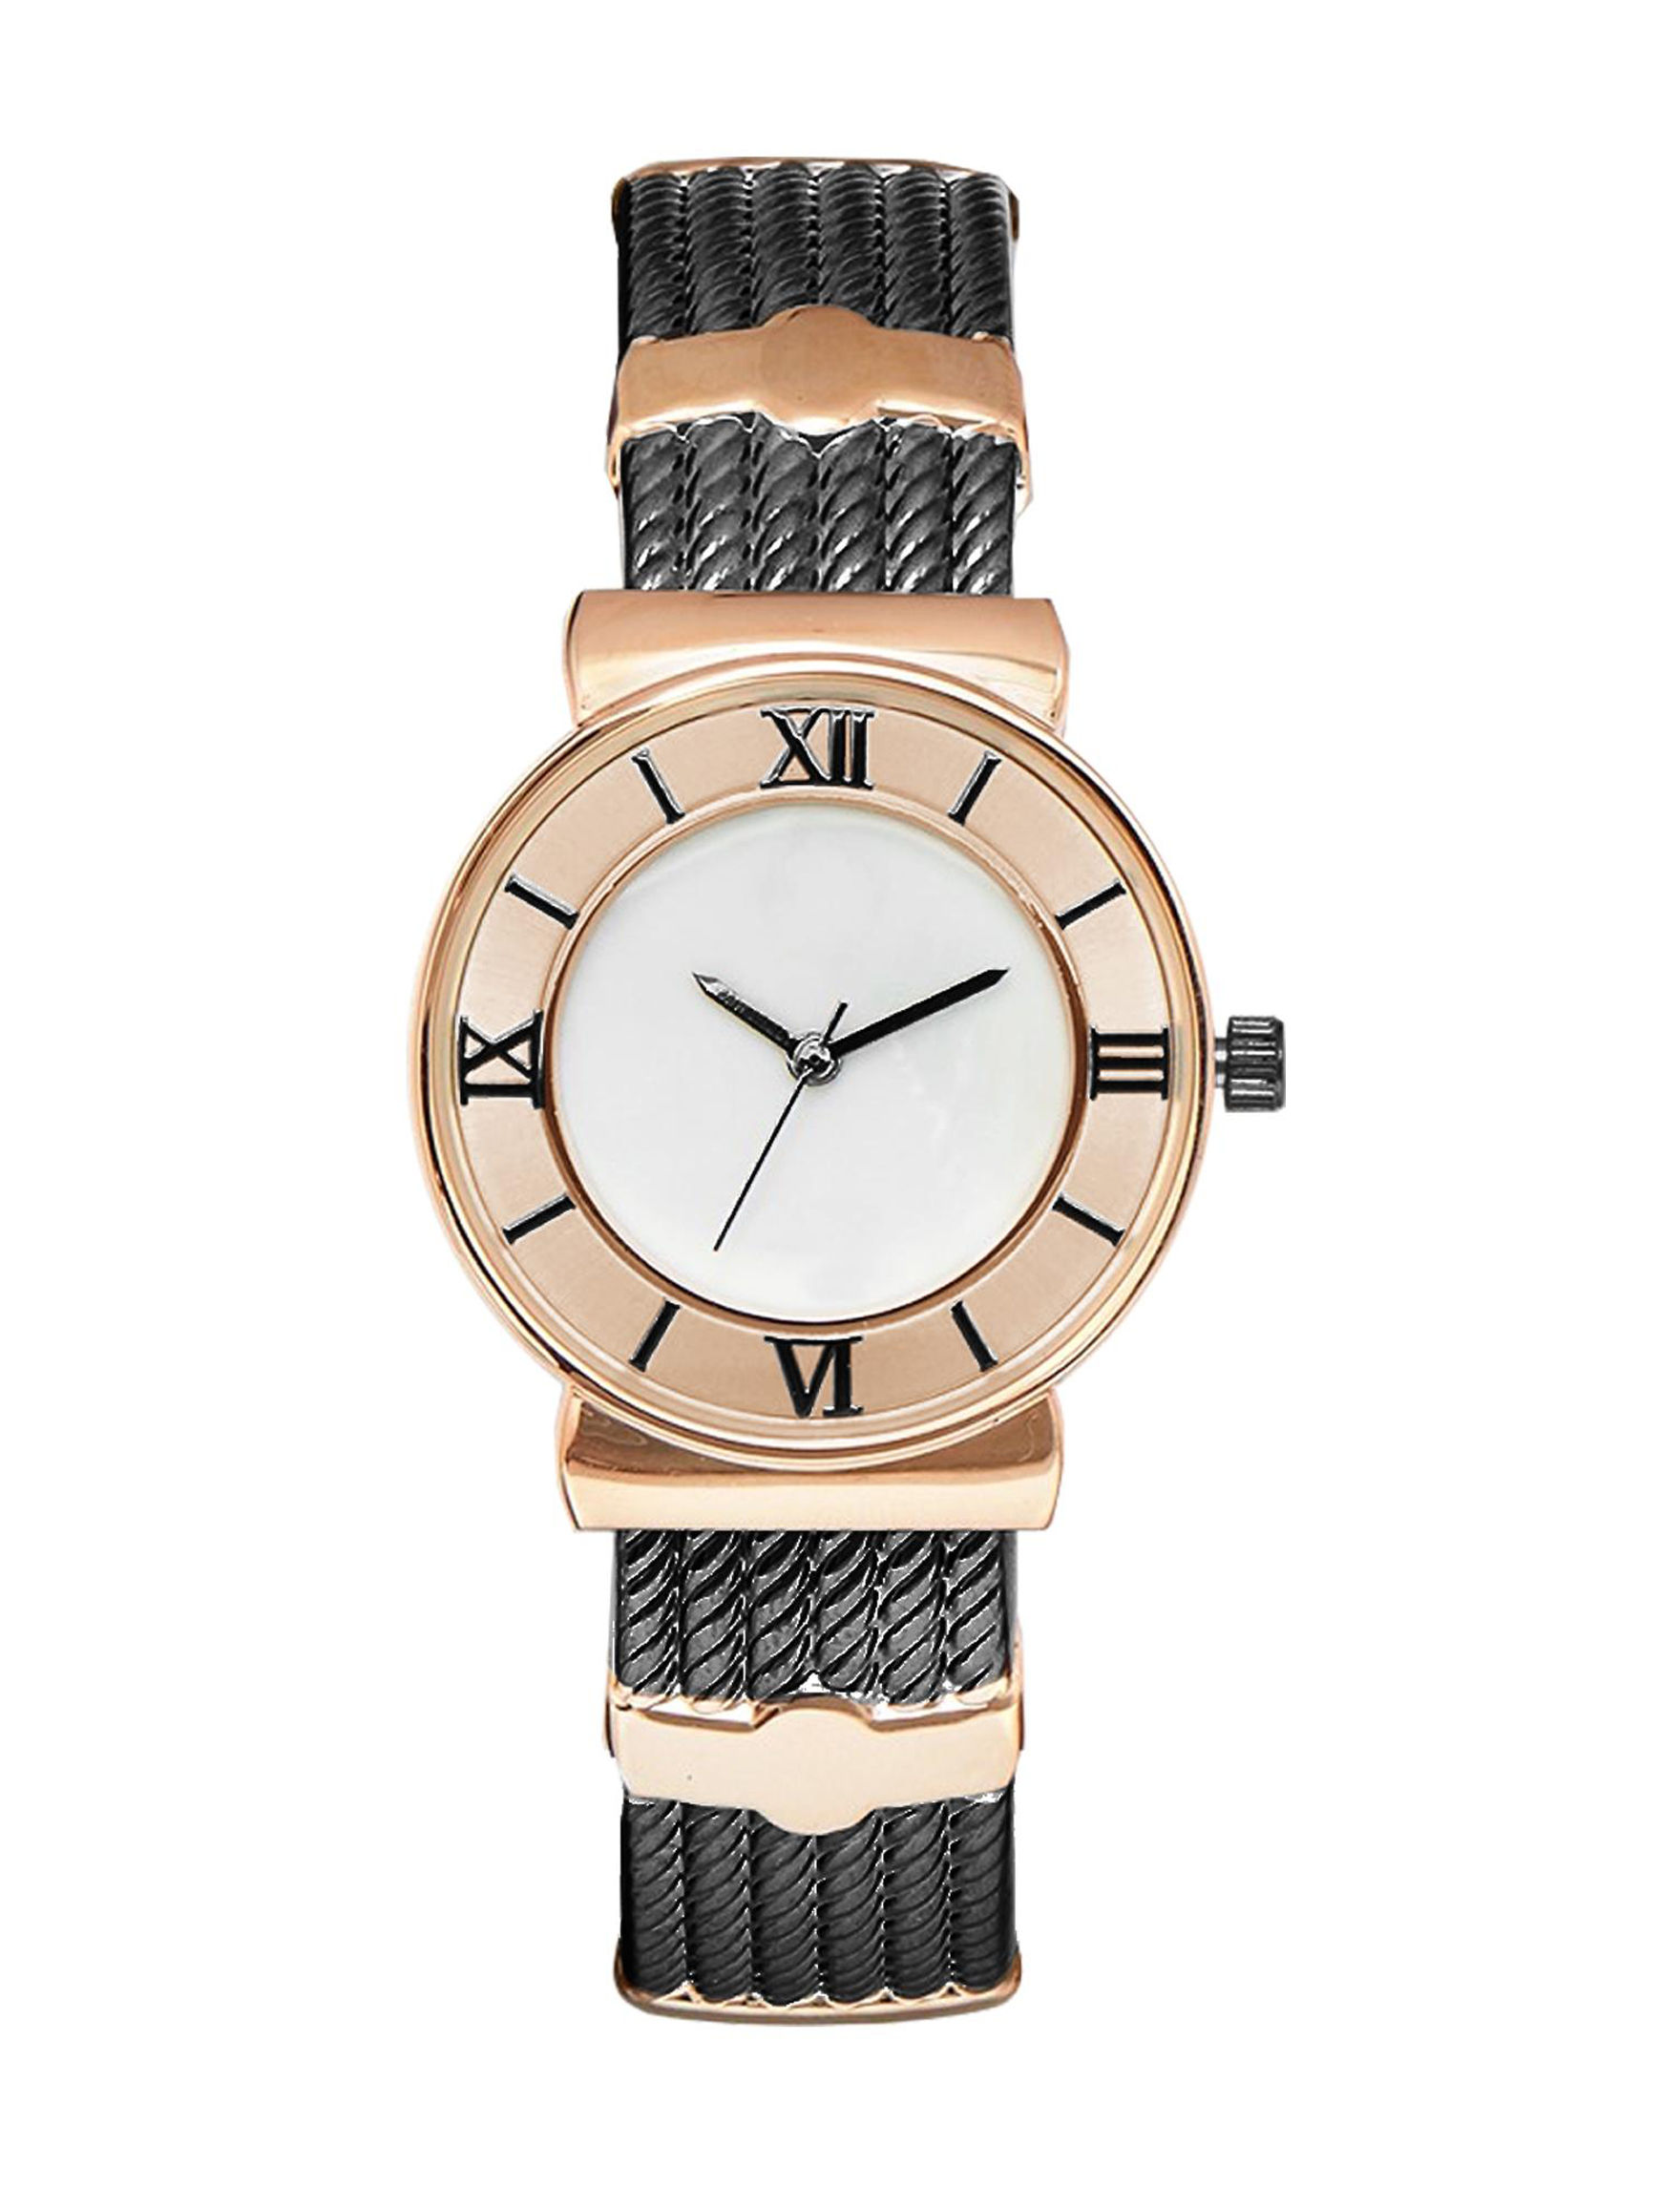 Global Time Rose Gold / Black Fashion Watches